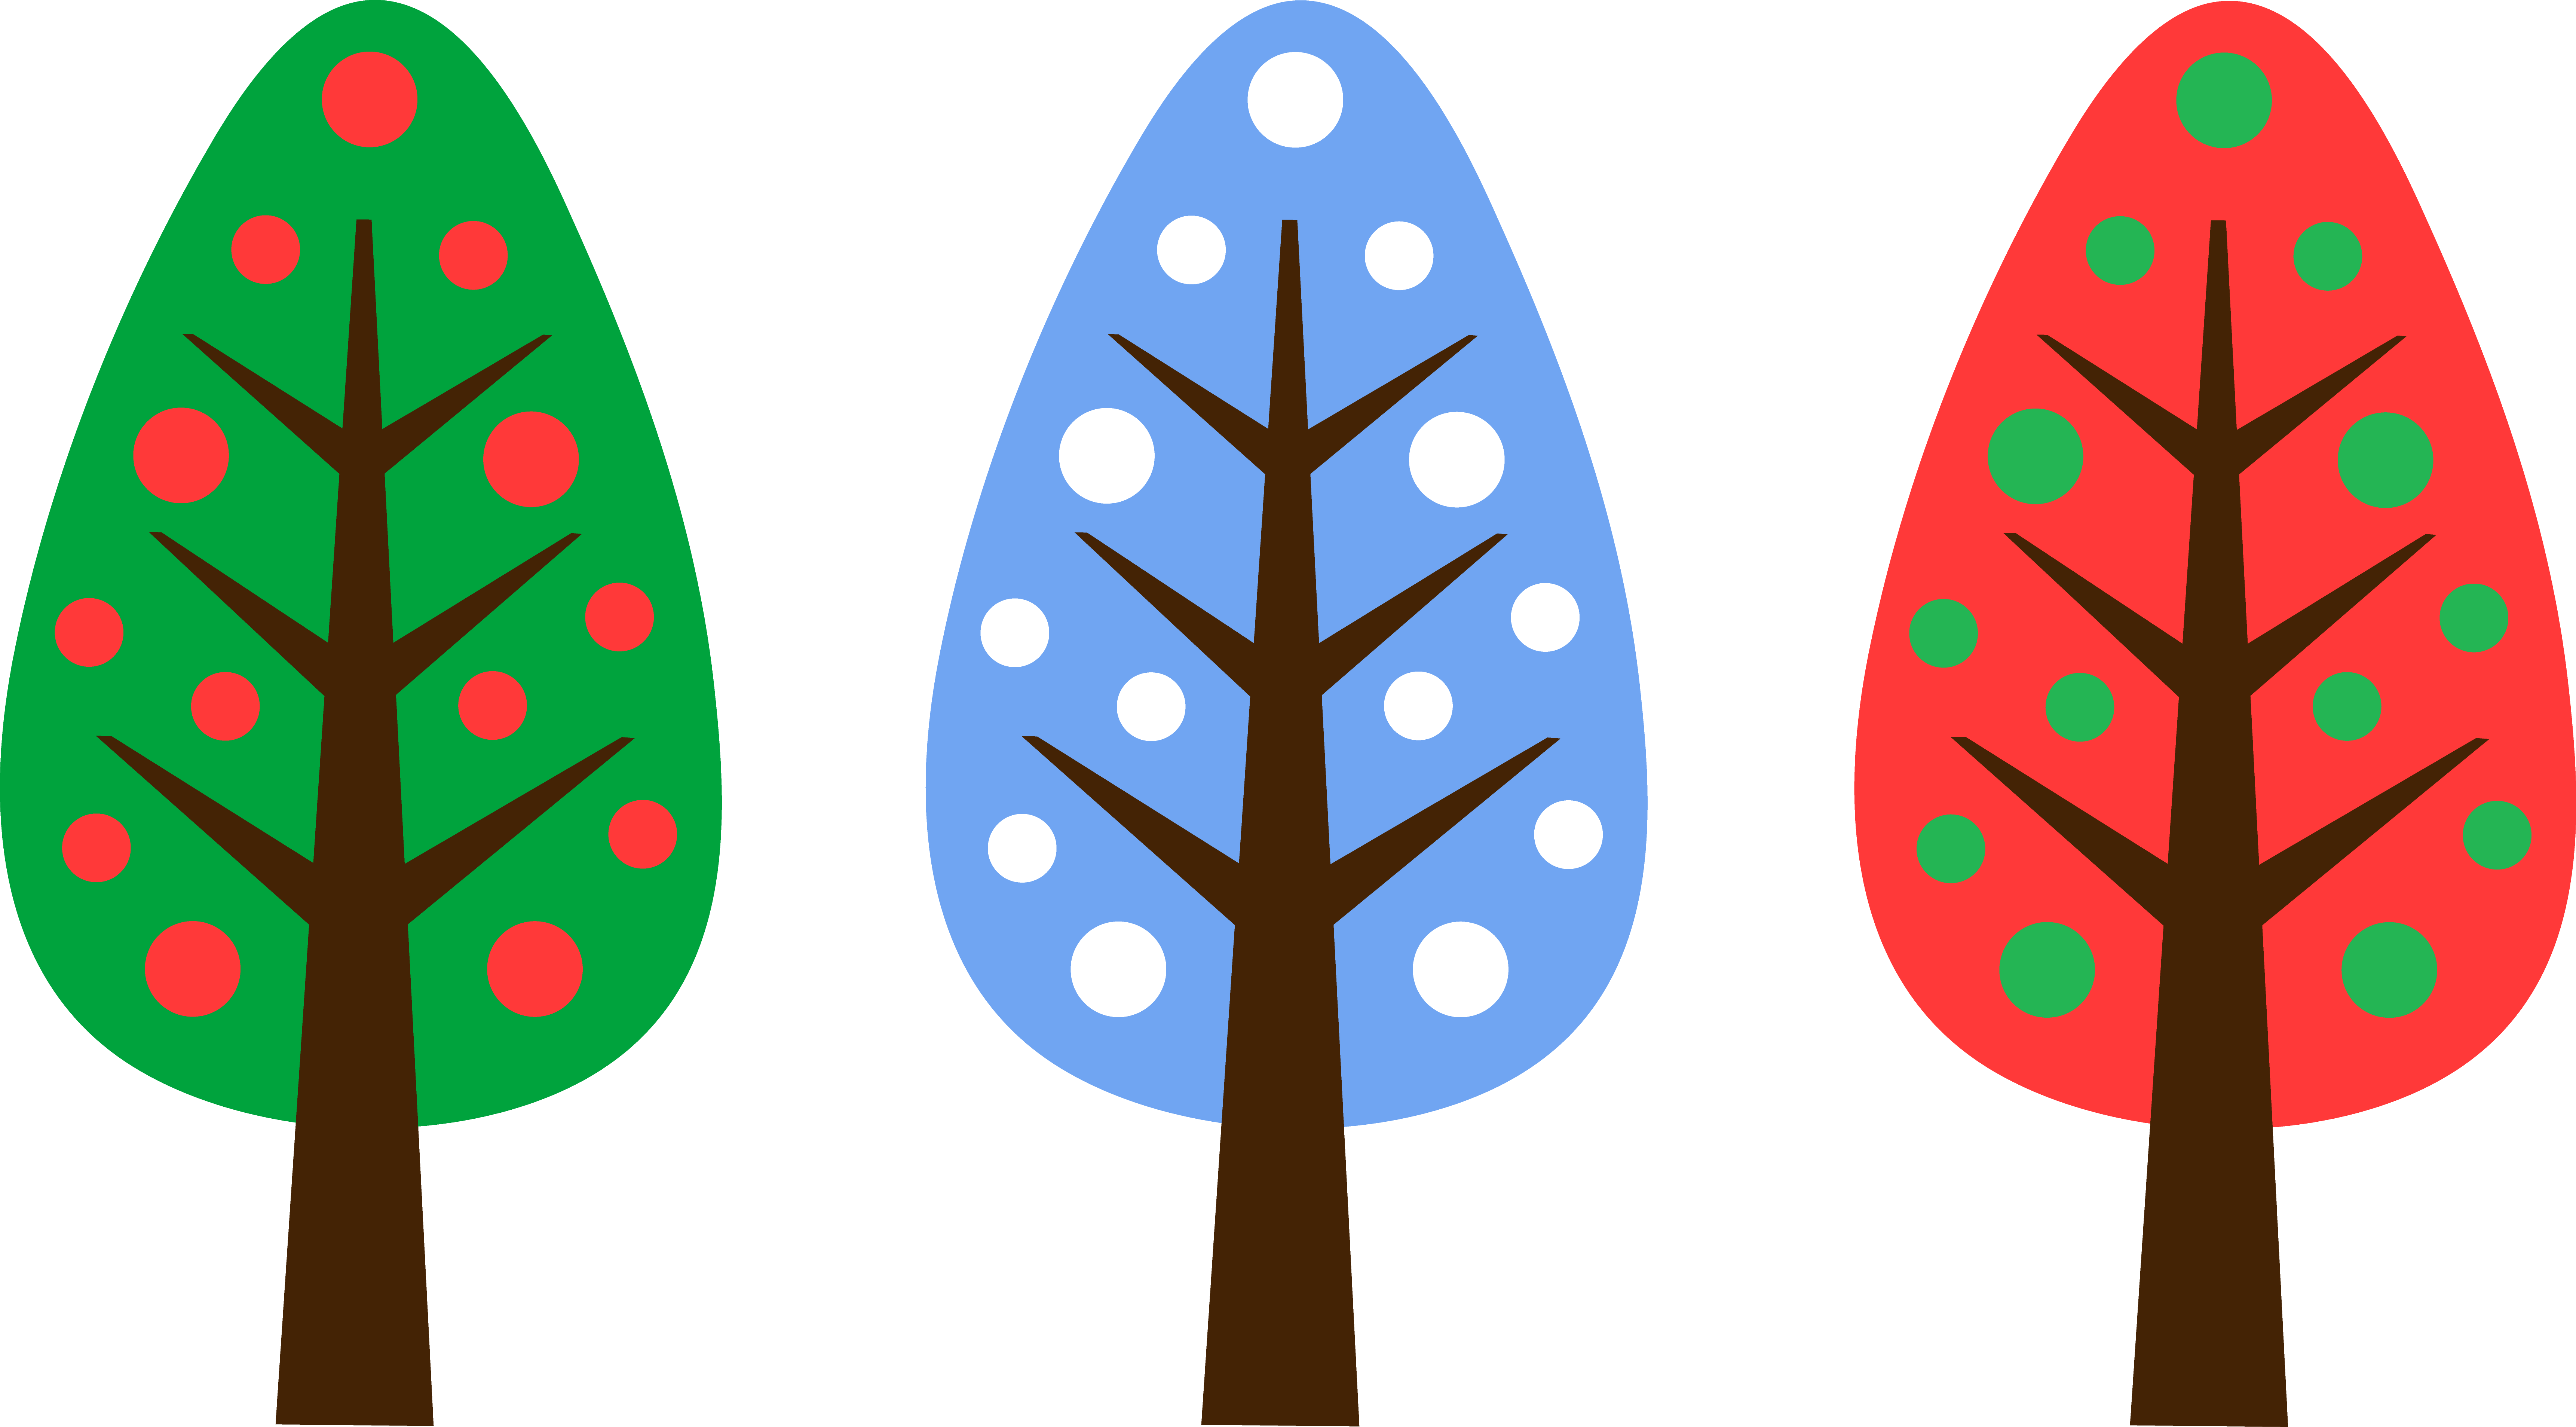 Holiday clipart december, Holiday december Transparent FREE.